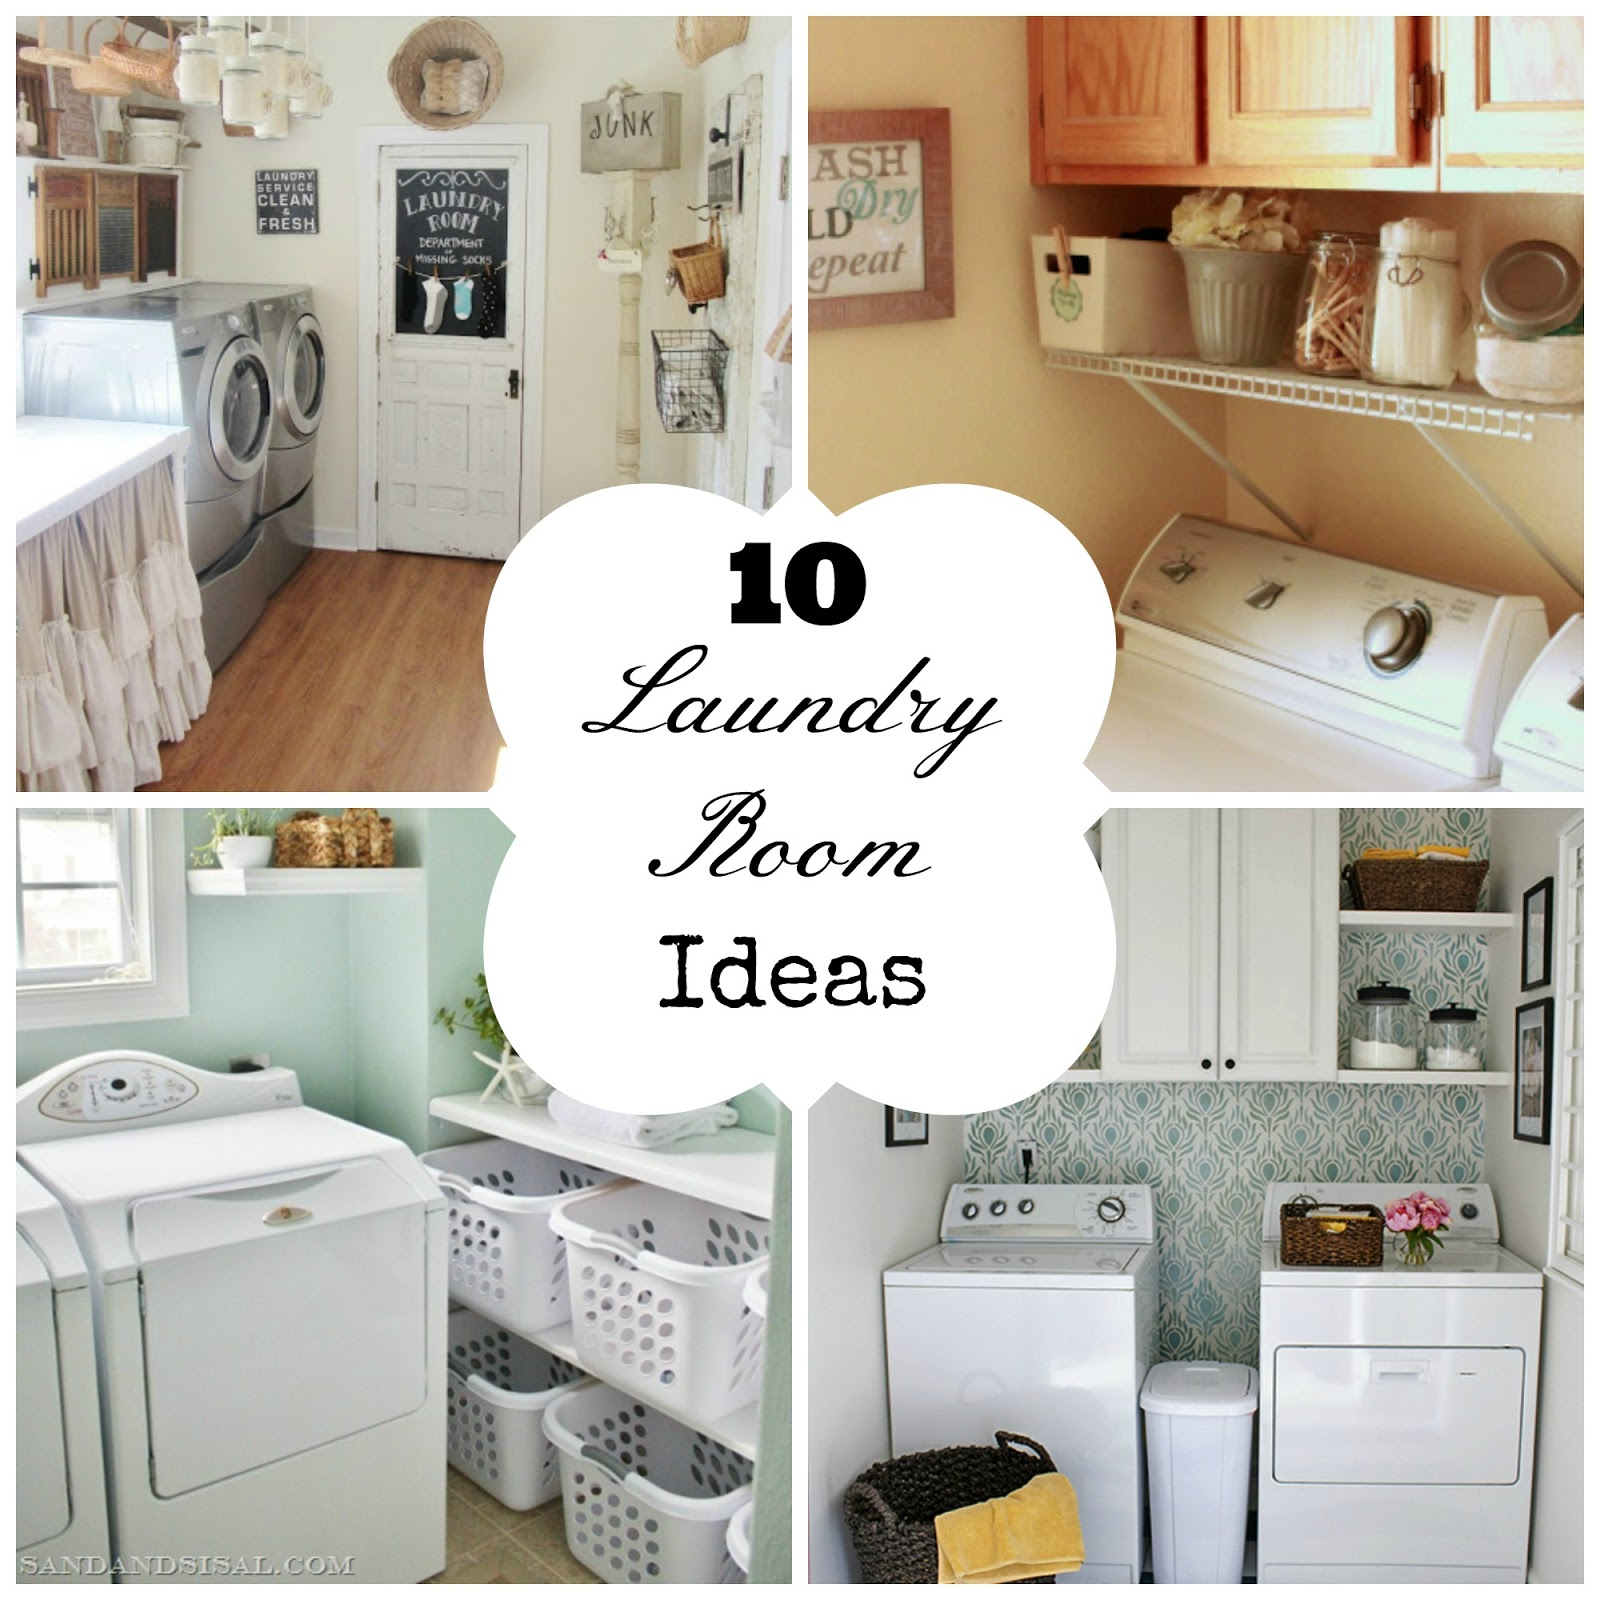 Cute Laundry Rooms 10 Laundry Room Ideas  Fun Home Things